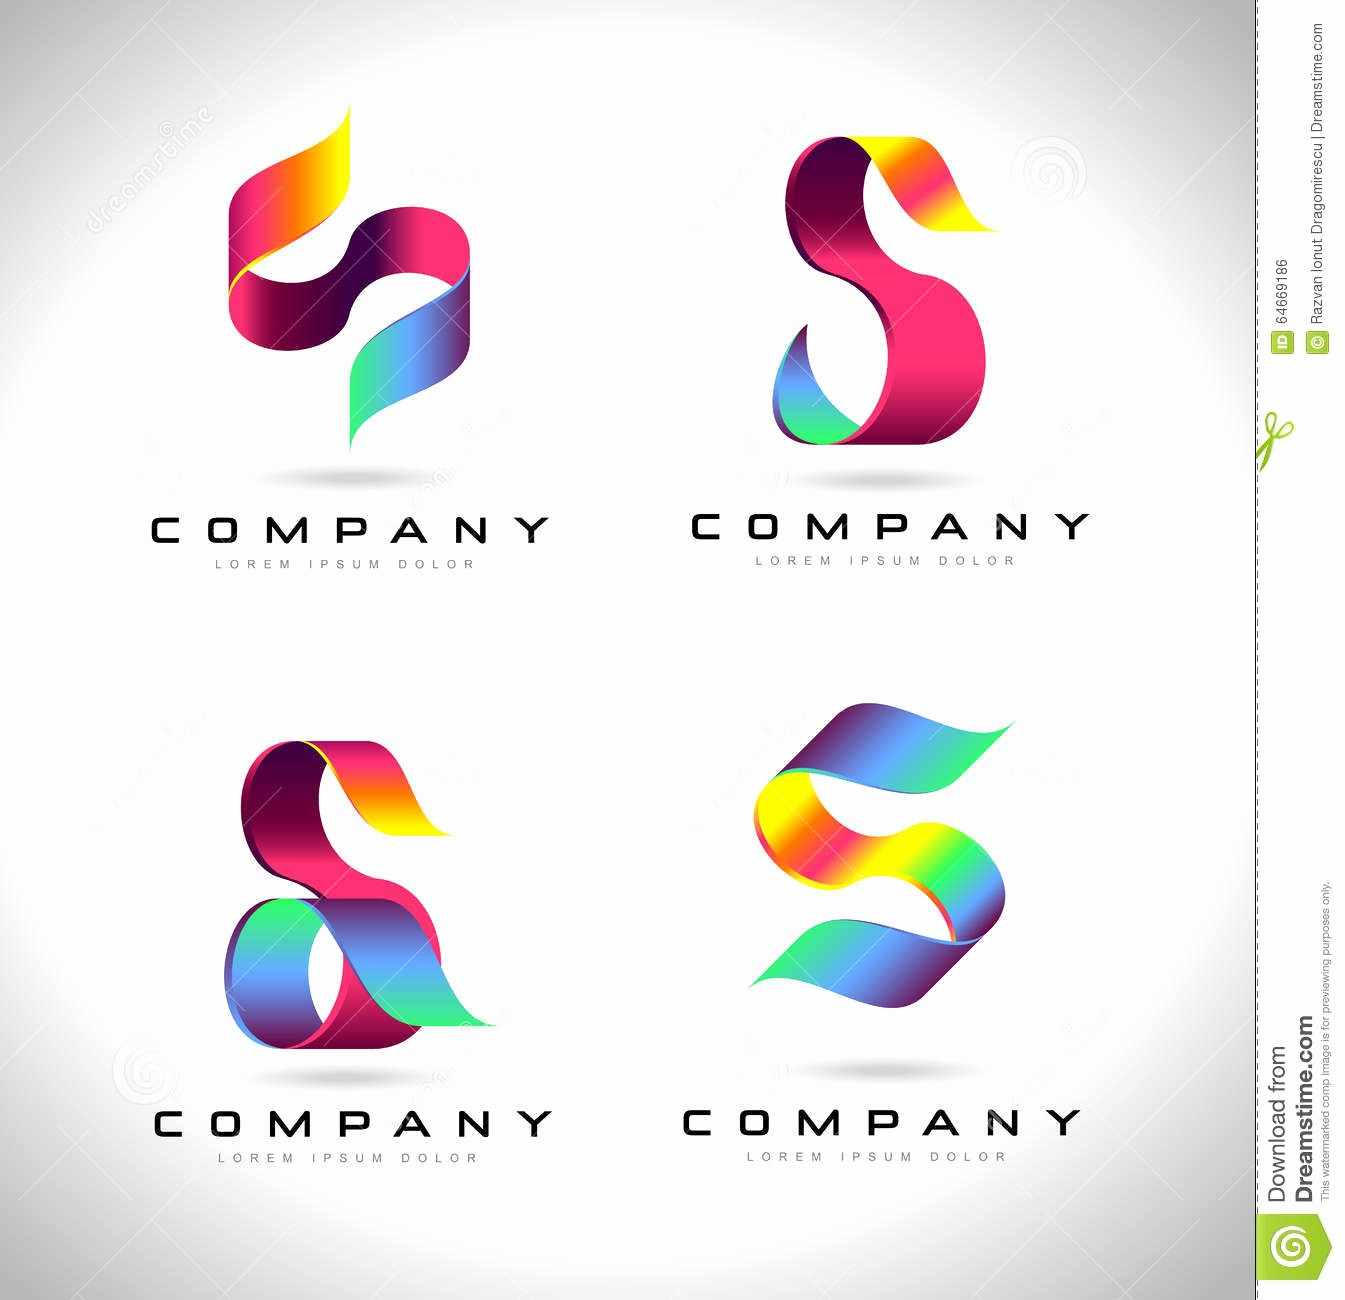 Sample Business Letter with Logo Fresh Design the Letter R Calligraphic Elegant Line Art Logo